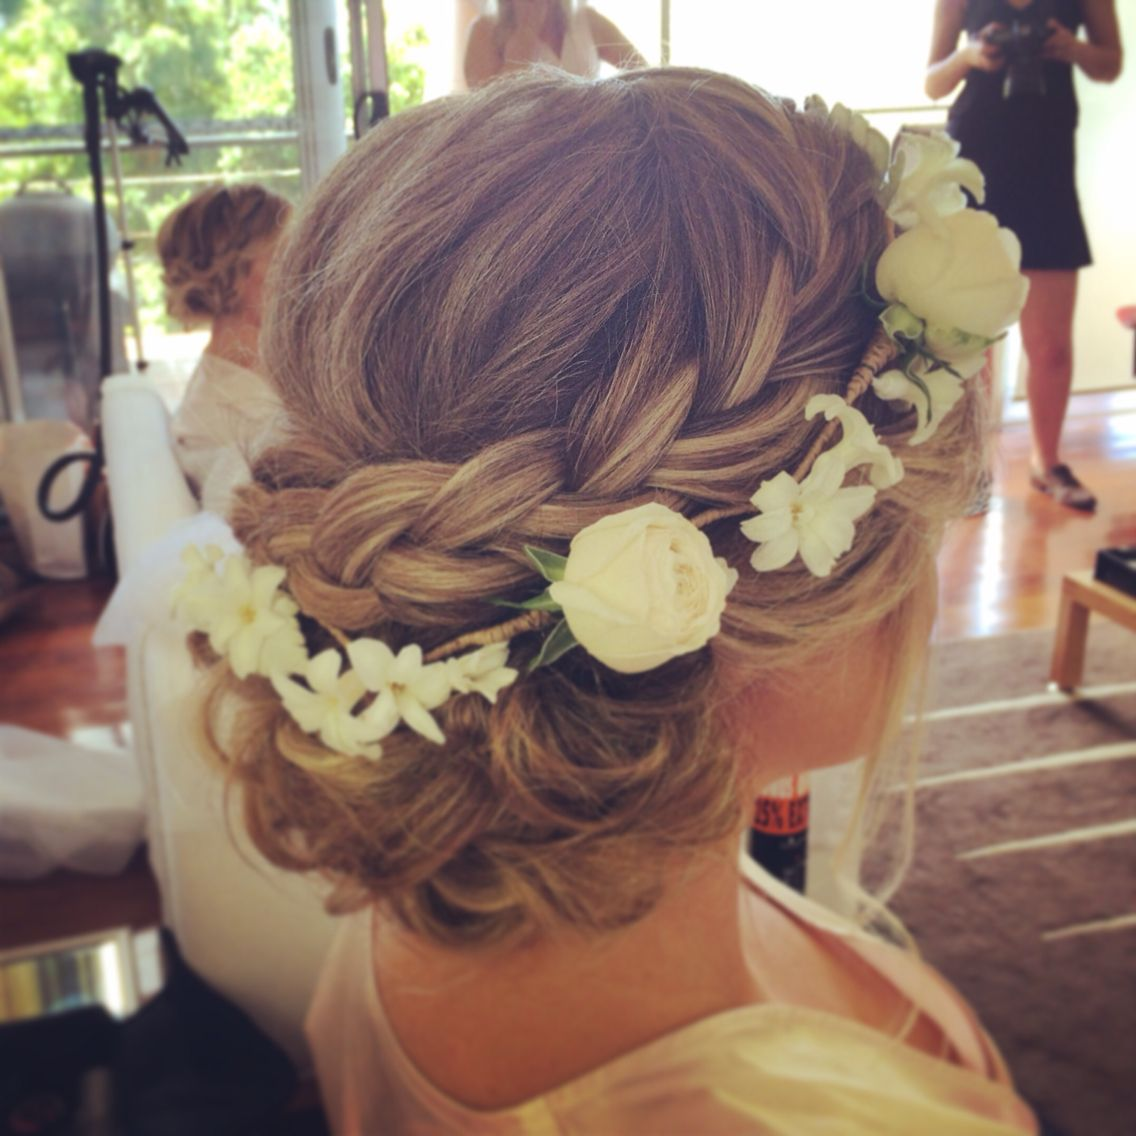 hair upstyle #wedding #guest #blonde #up #updo #soft #diamanté